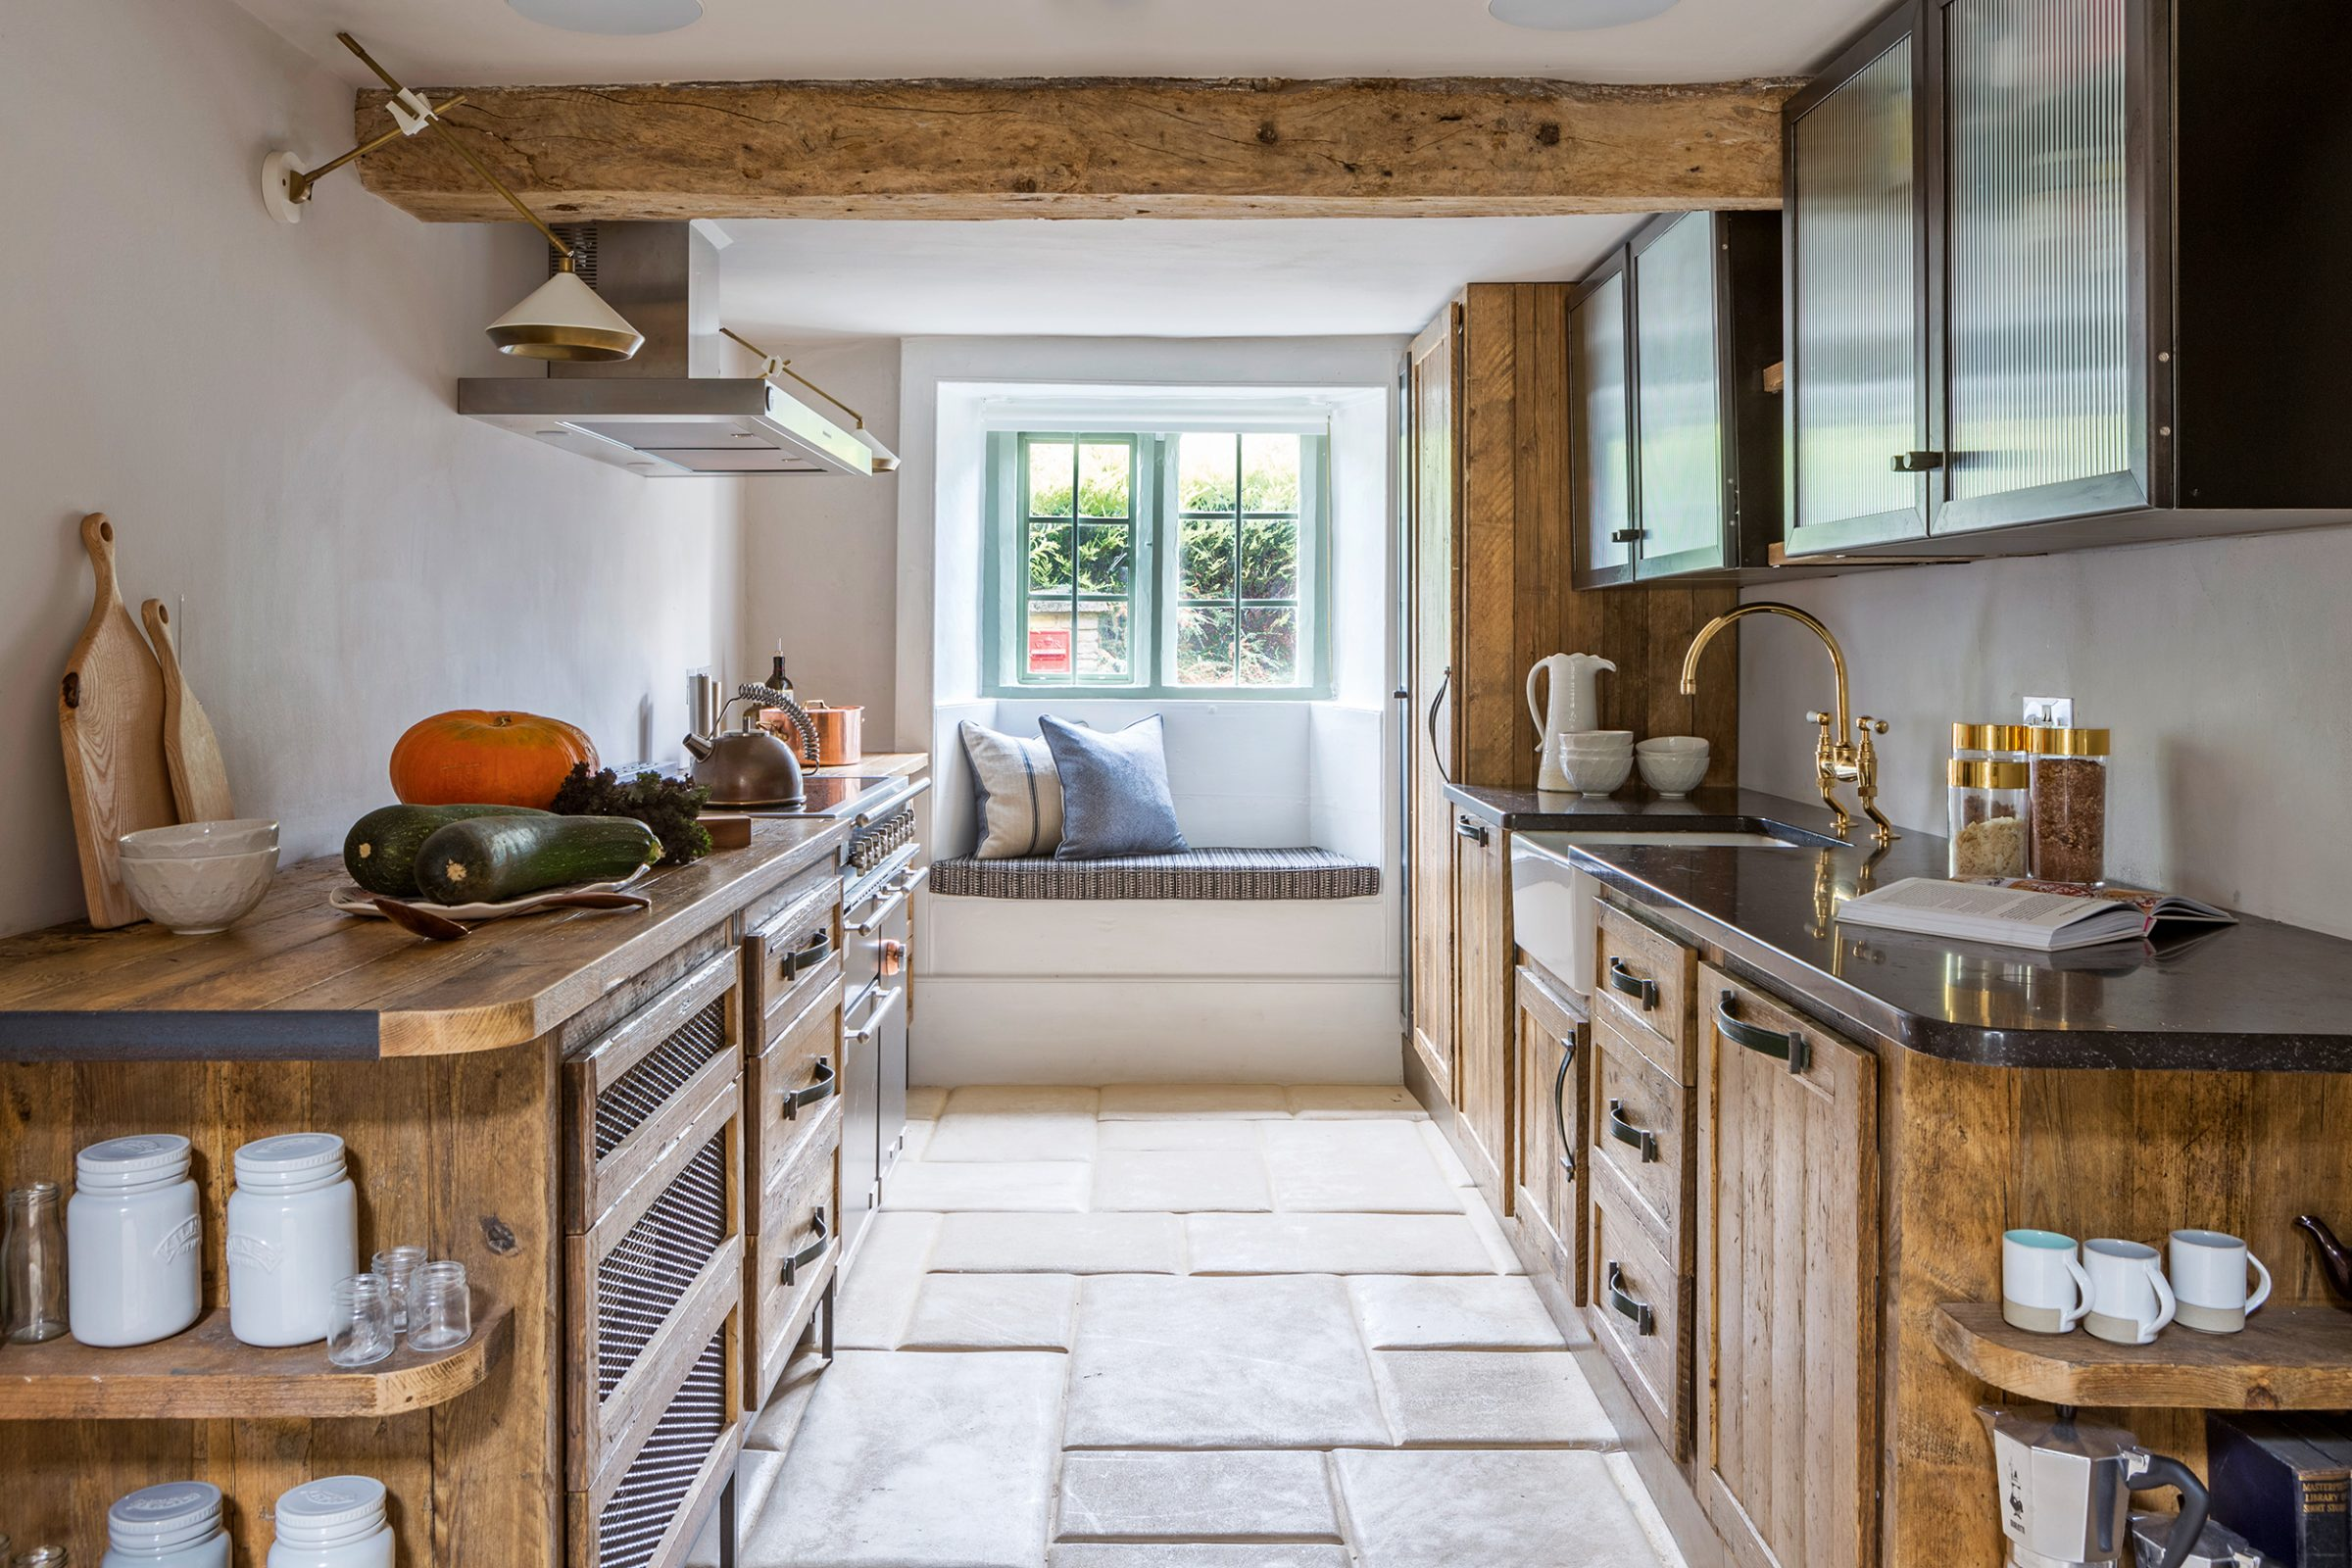 A New Kitchen Given Huge Character Thanks To The Beauty Of Reclaimed Wood Country Life